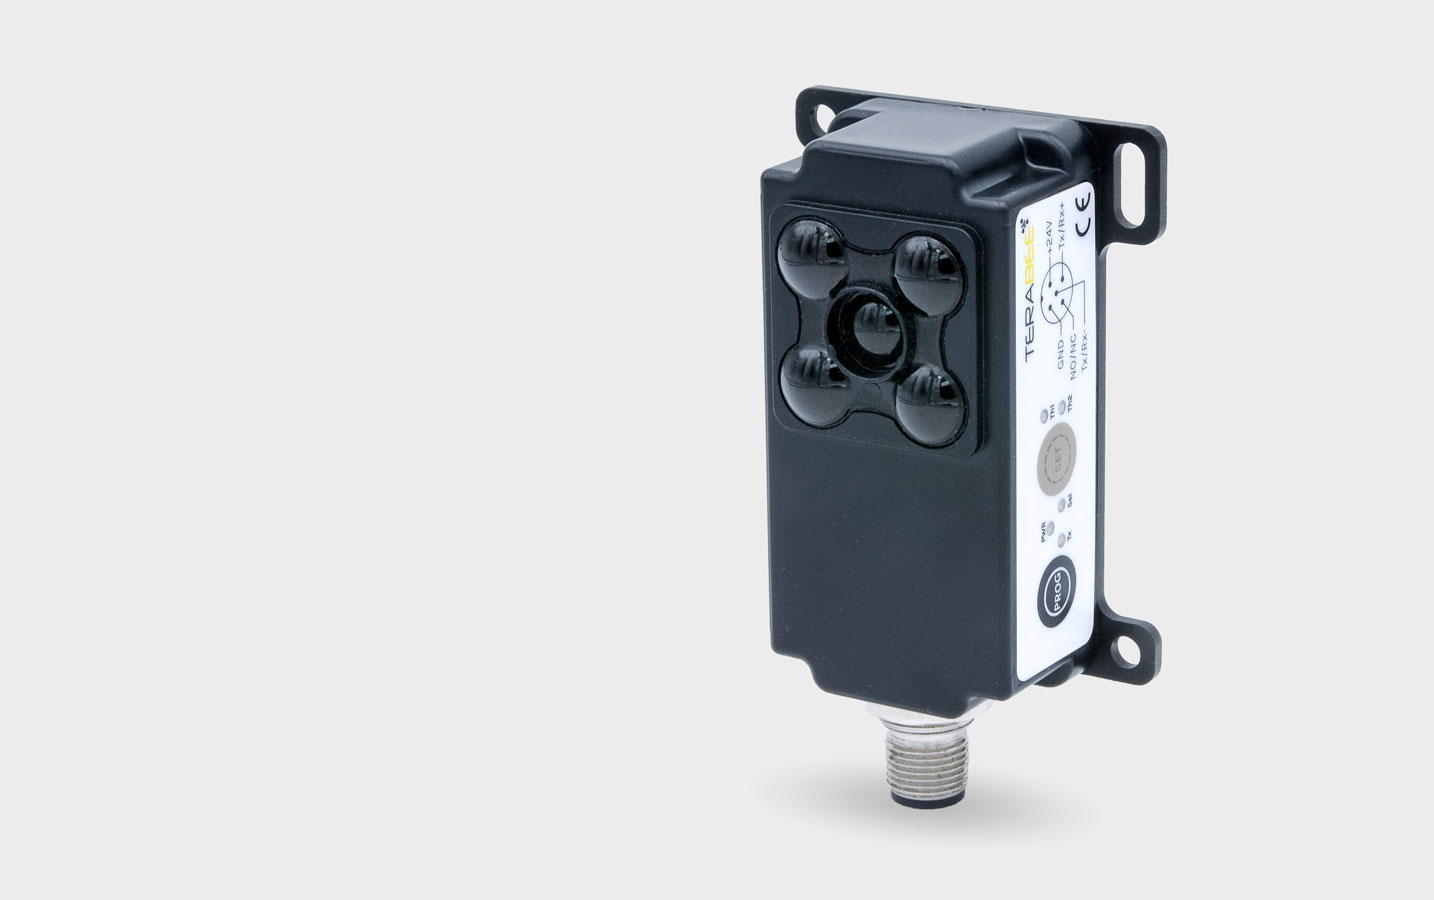 Terabee Blog Terabee launches its first industrial-grade smart distance sensor